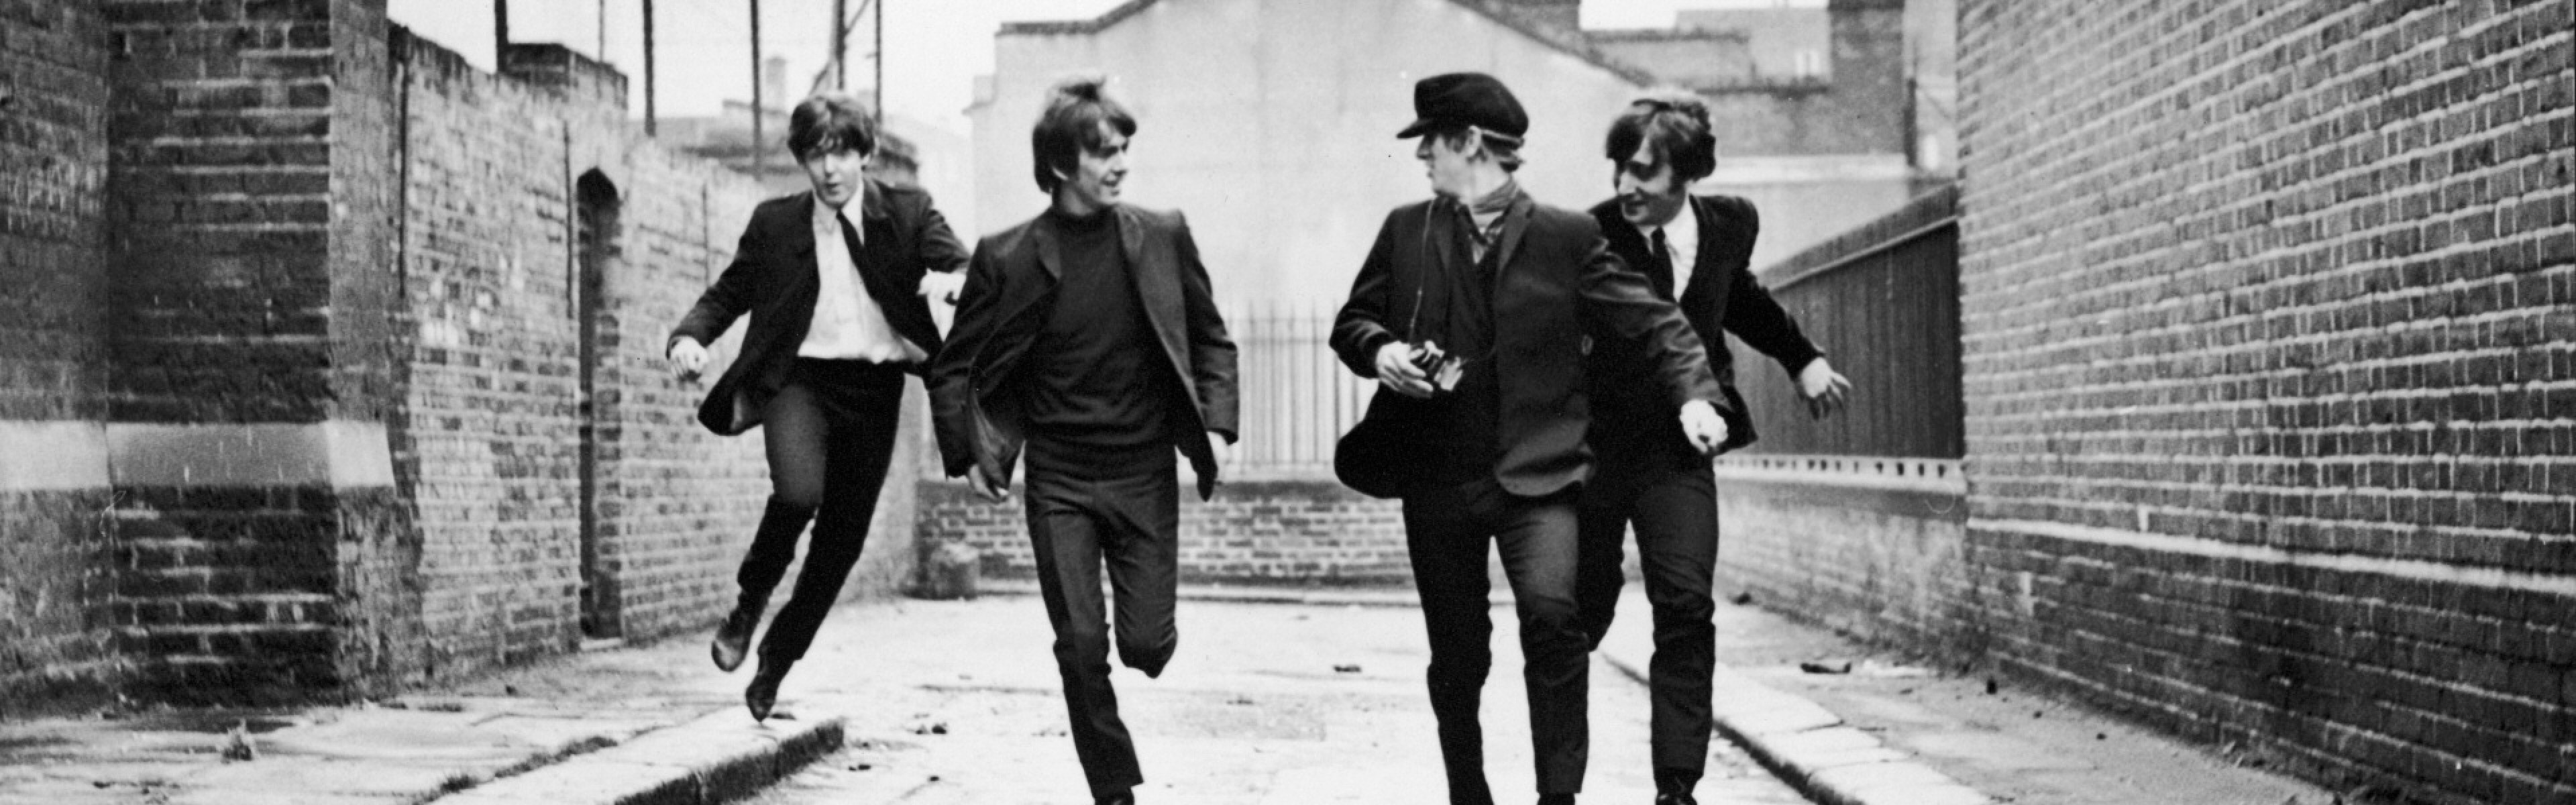 The Beatles Wallpaper iPhone (62+ images)